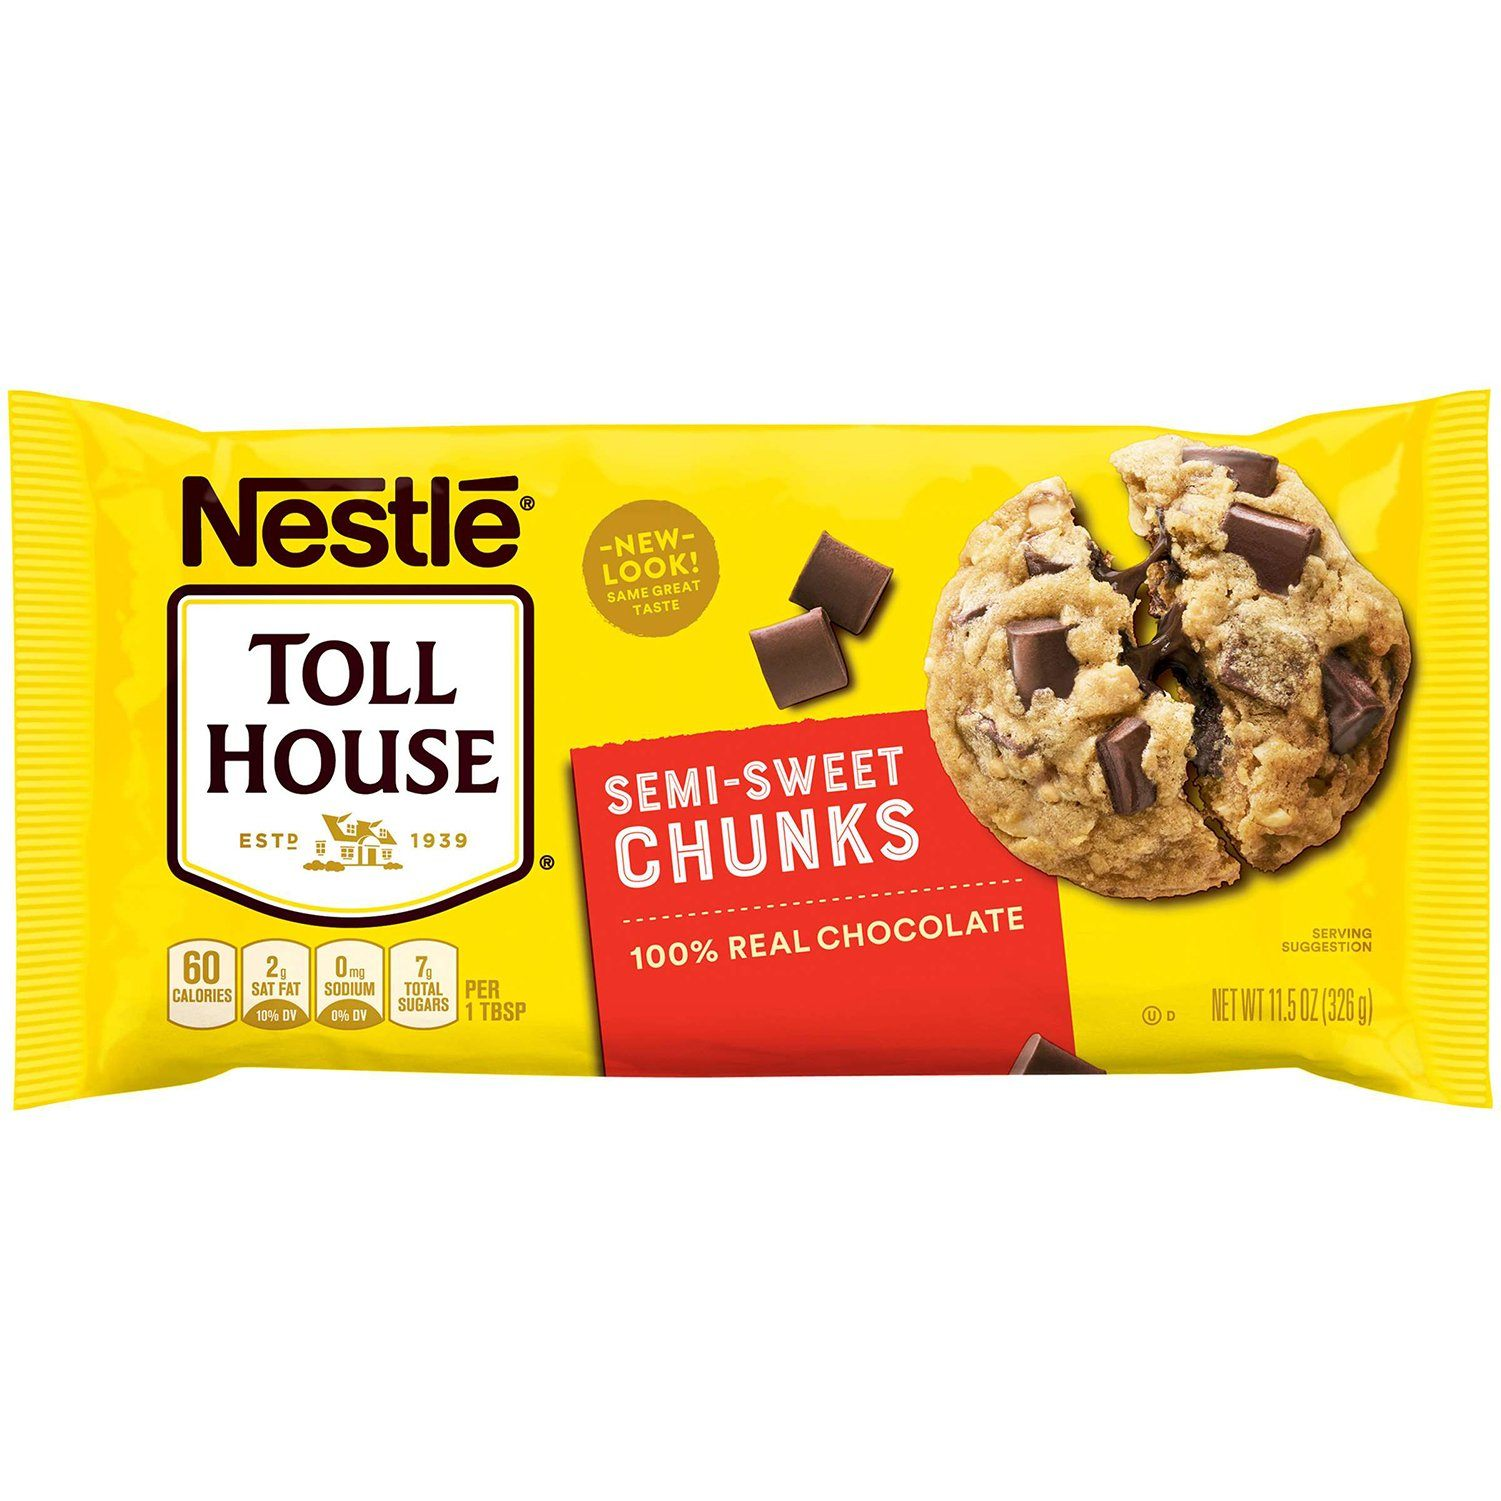 Nestlé Toll House Baking Morsels Meltable Toll House Semi-Sweet Chunks 11.5 Ounce